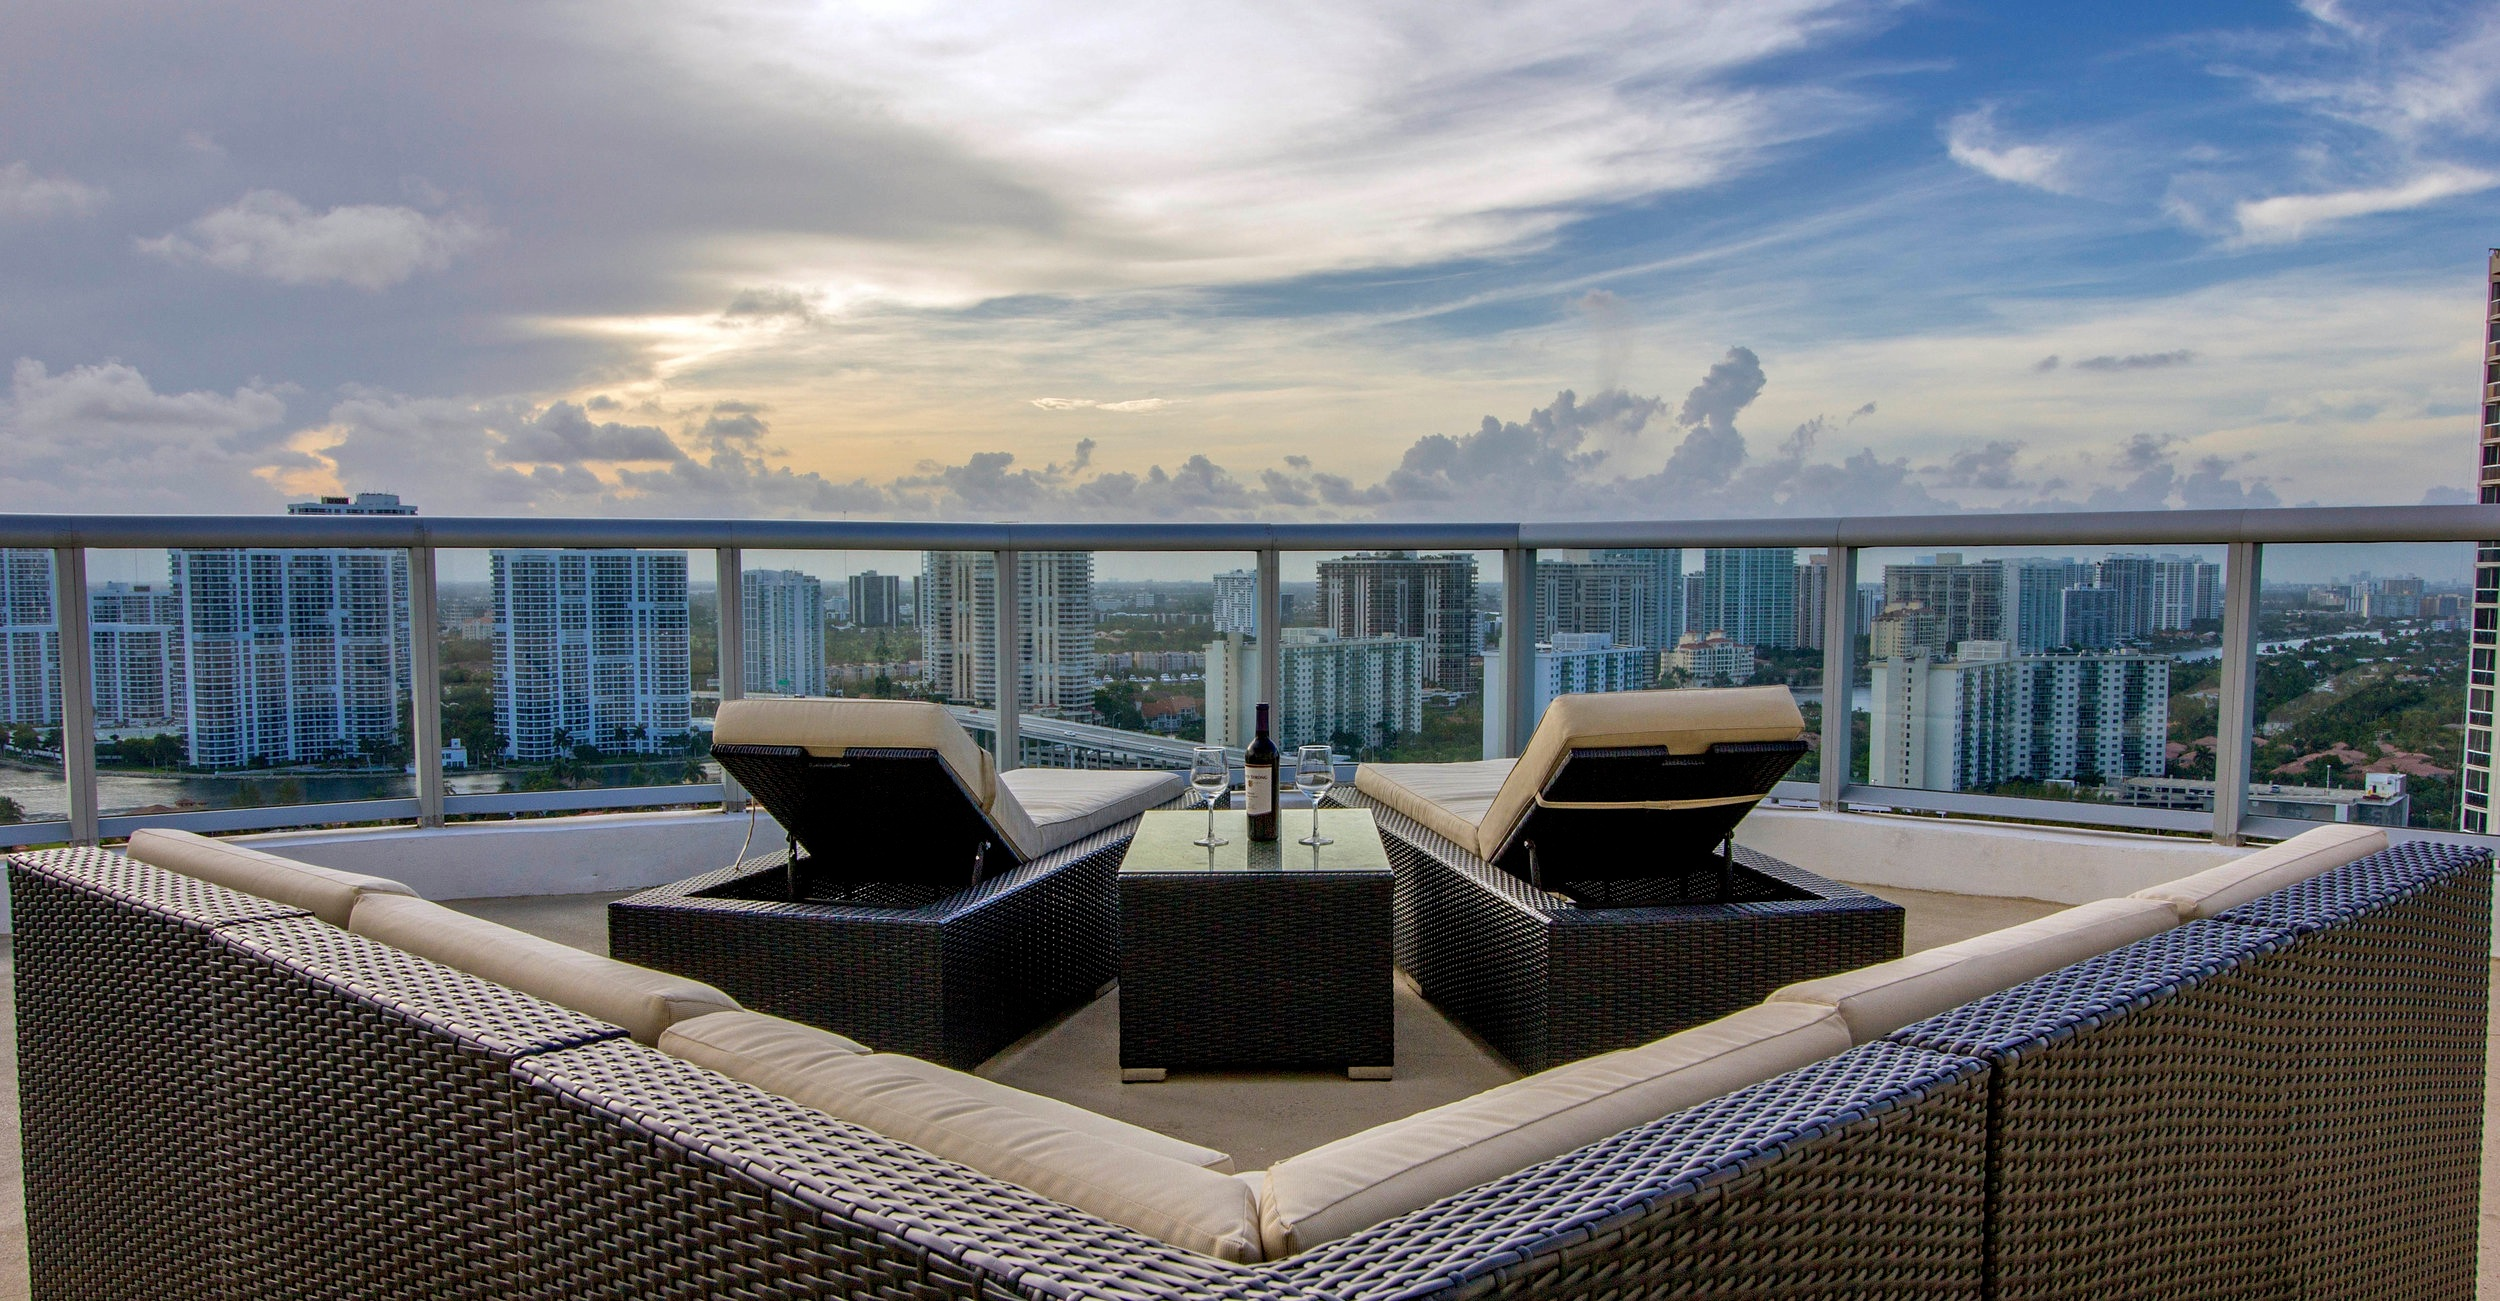 Balcony+of+a+Penthouse+in+Miami+Beach